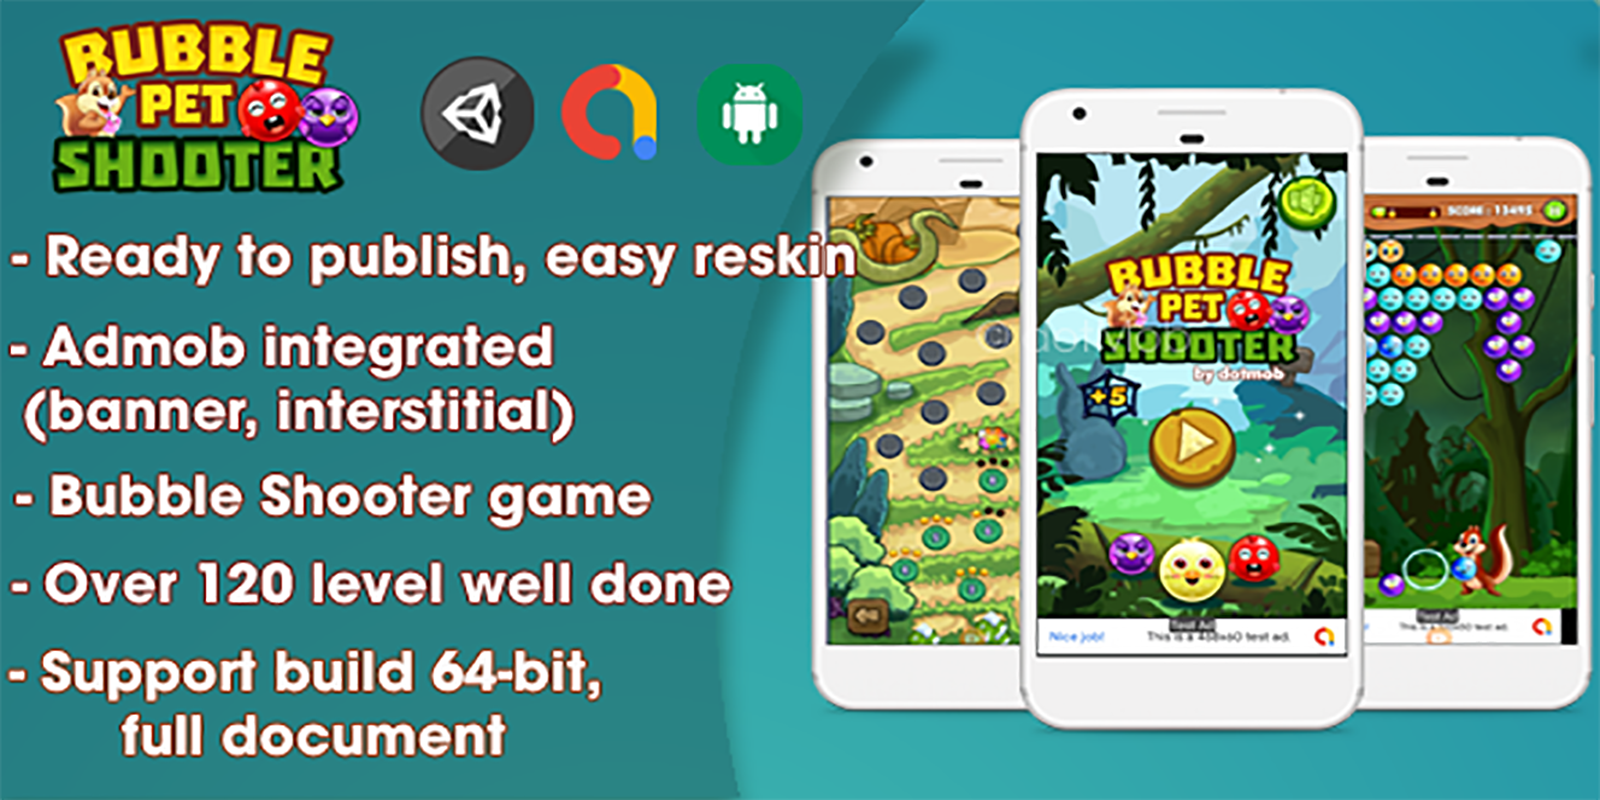 Bubble Shooter Pet - Unity Complete Project (Android + iOS + AdMob)